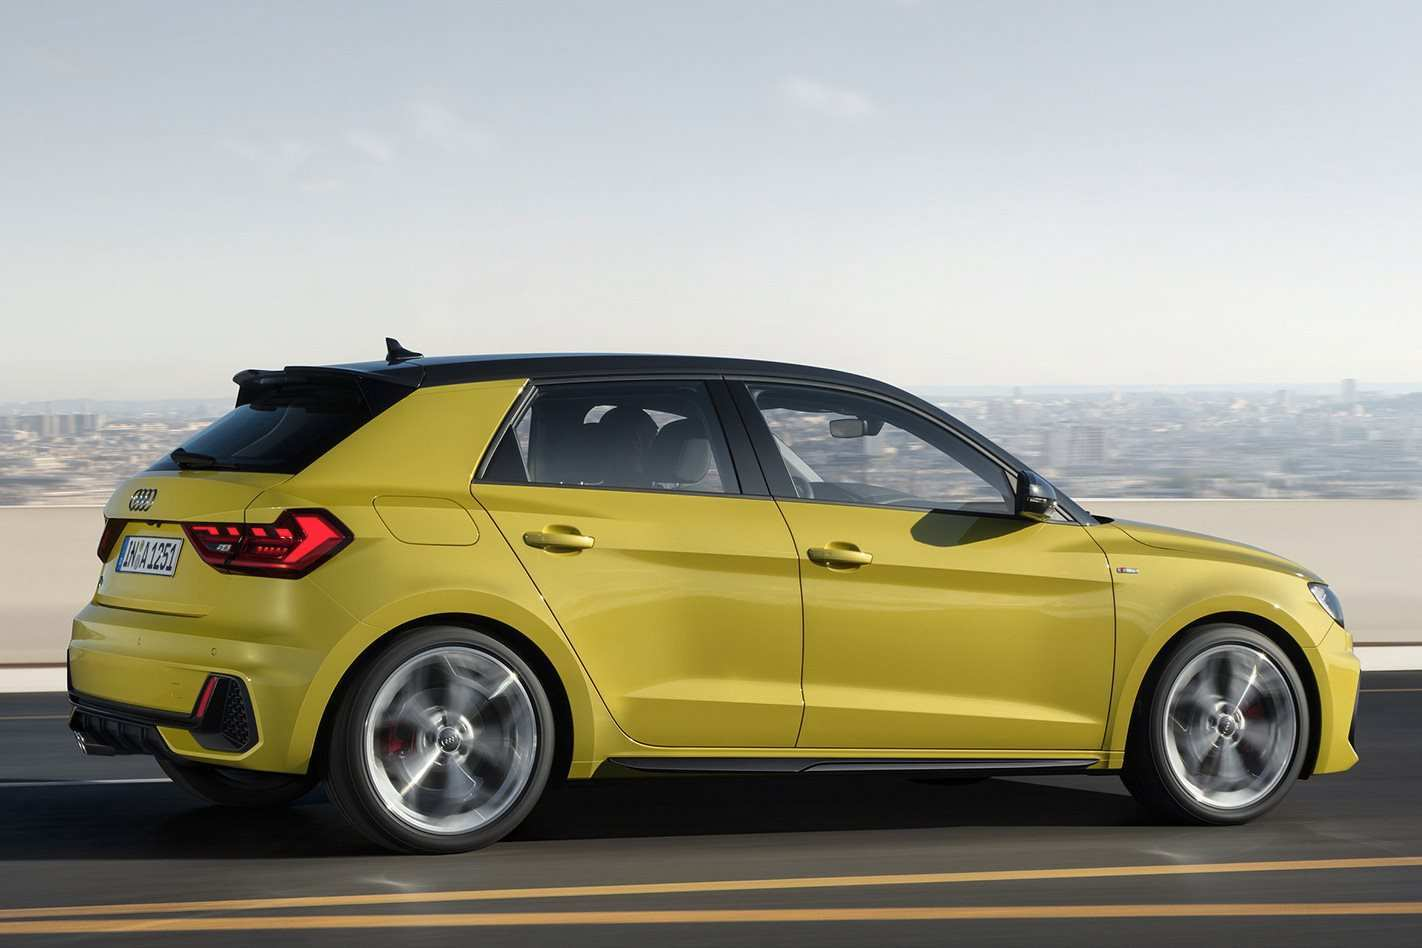 56 Great S1 Audi 2019 New Review Review for S1 Audi 2019 New Review